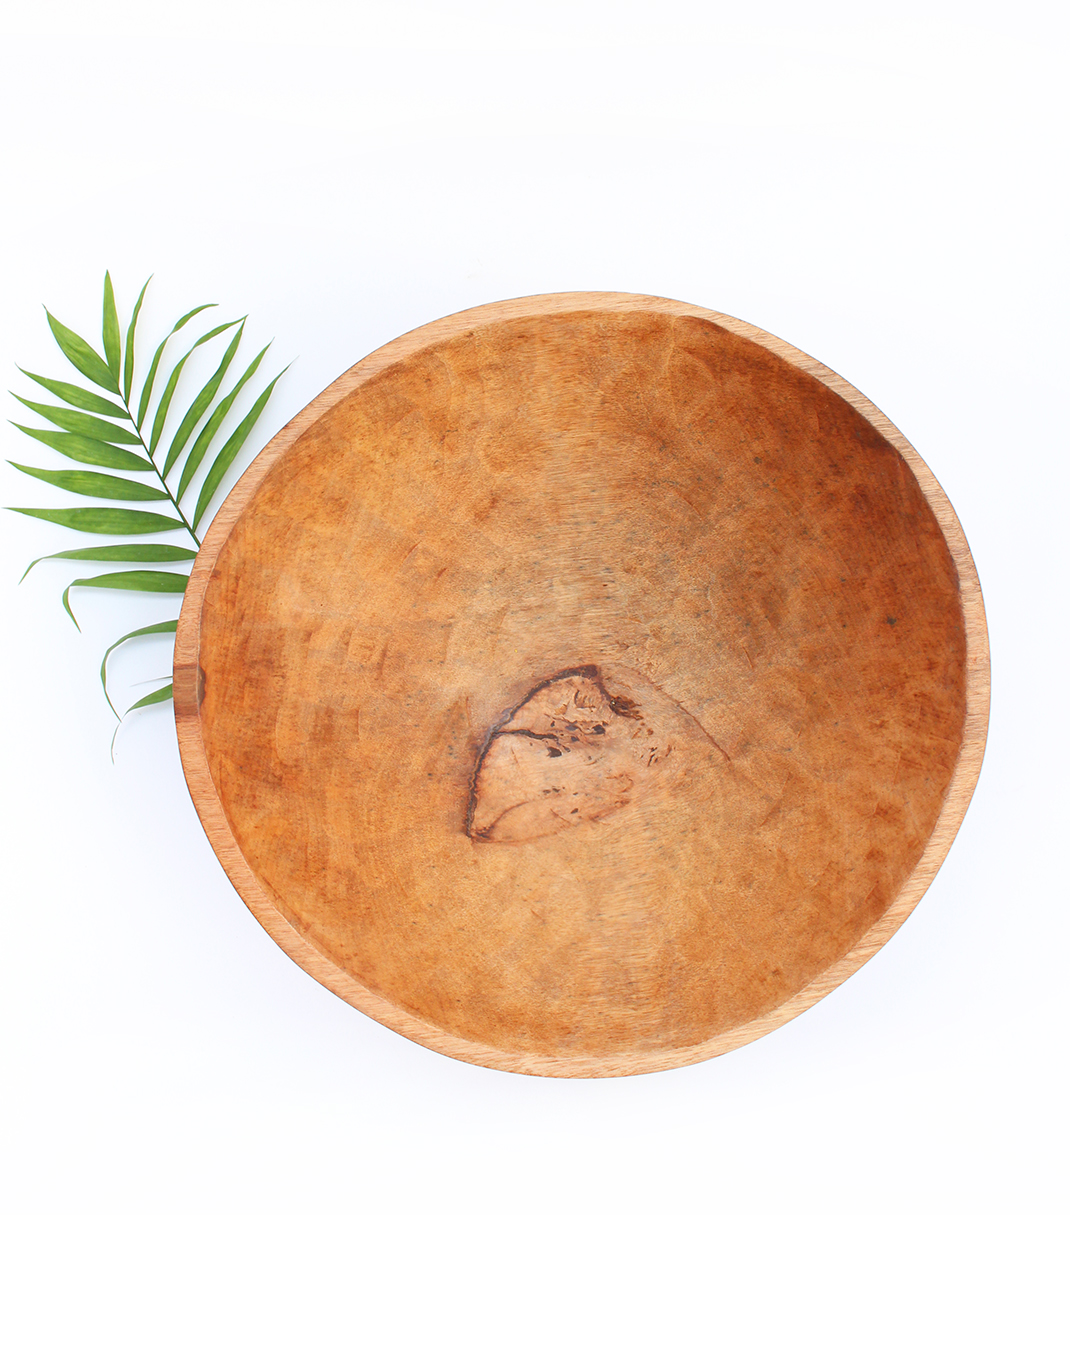 Hand-carved Wood Serving Bowl - 20 in.